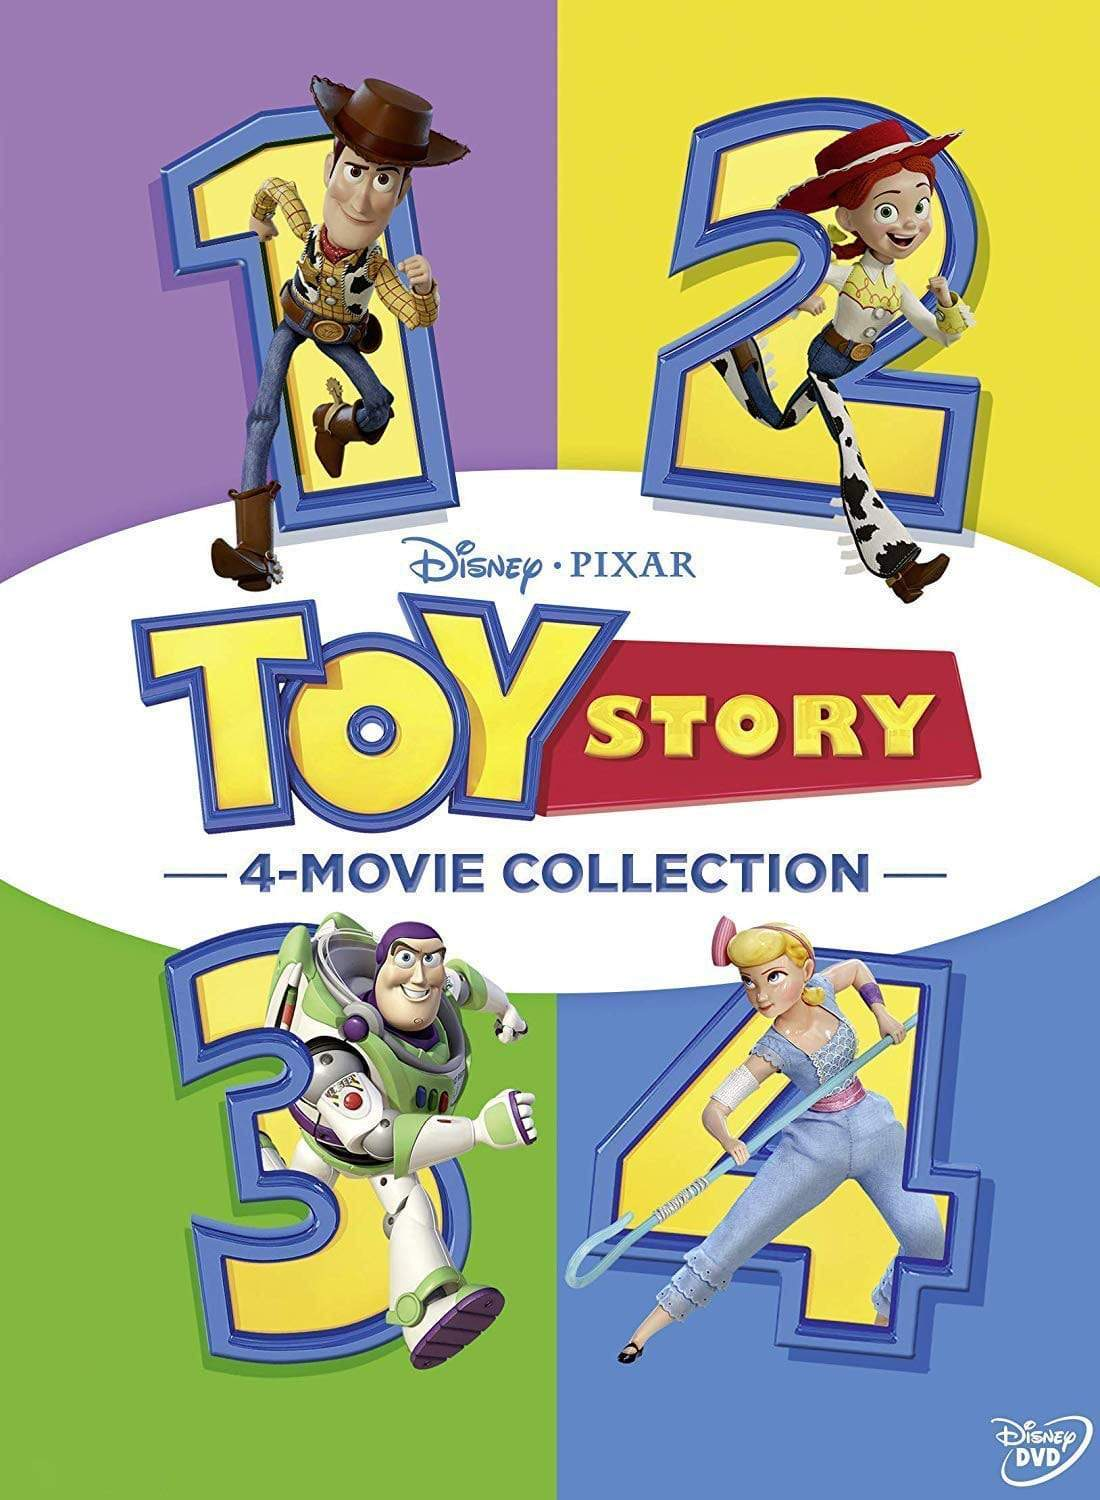 Walt Disney's Toy Story 1-4 Movie Collection DVD Walt Disney DVDs & Blu-ray Discs > DVDs